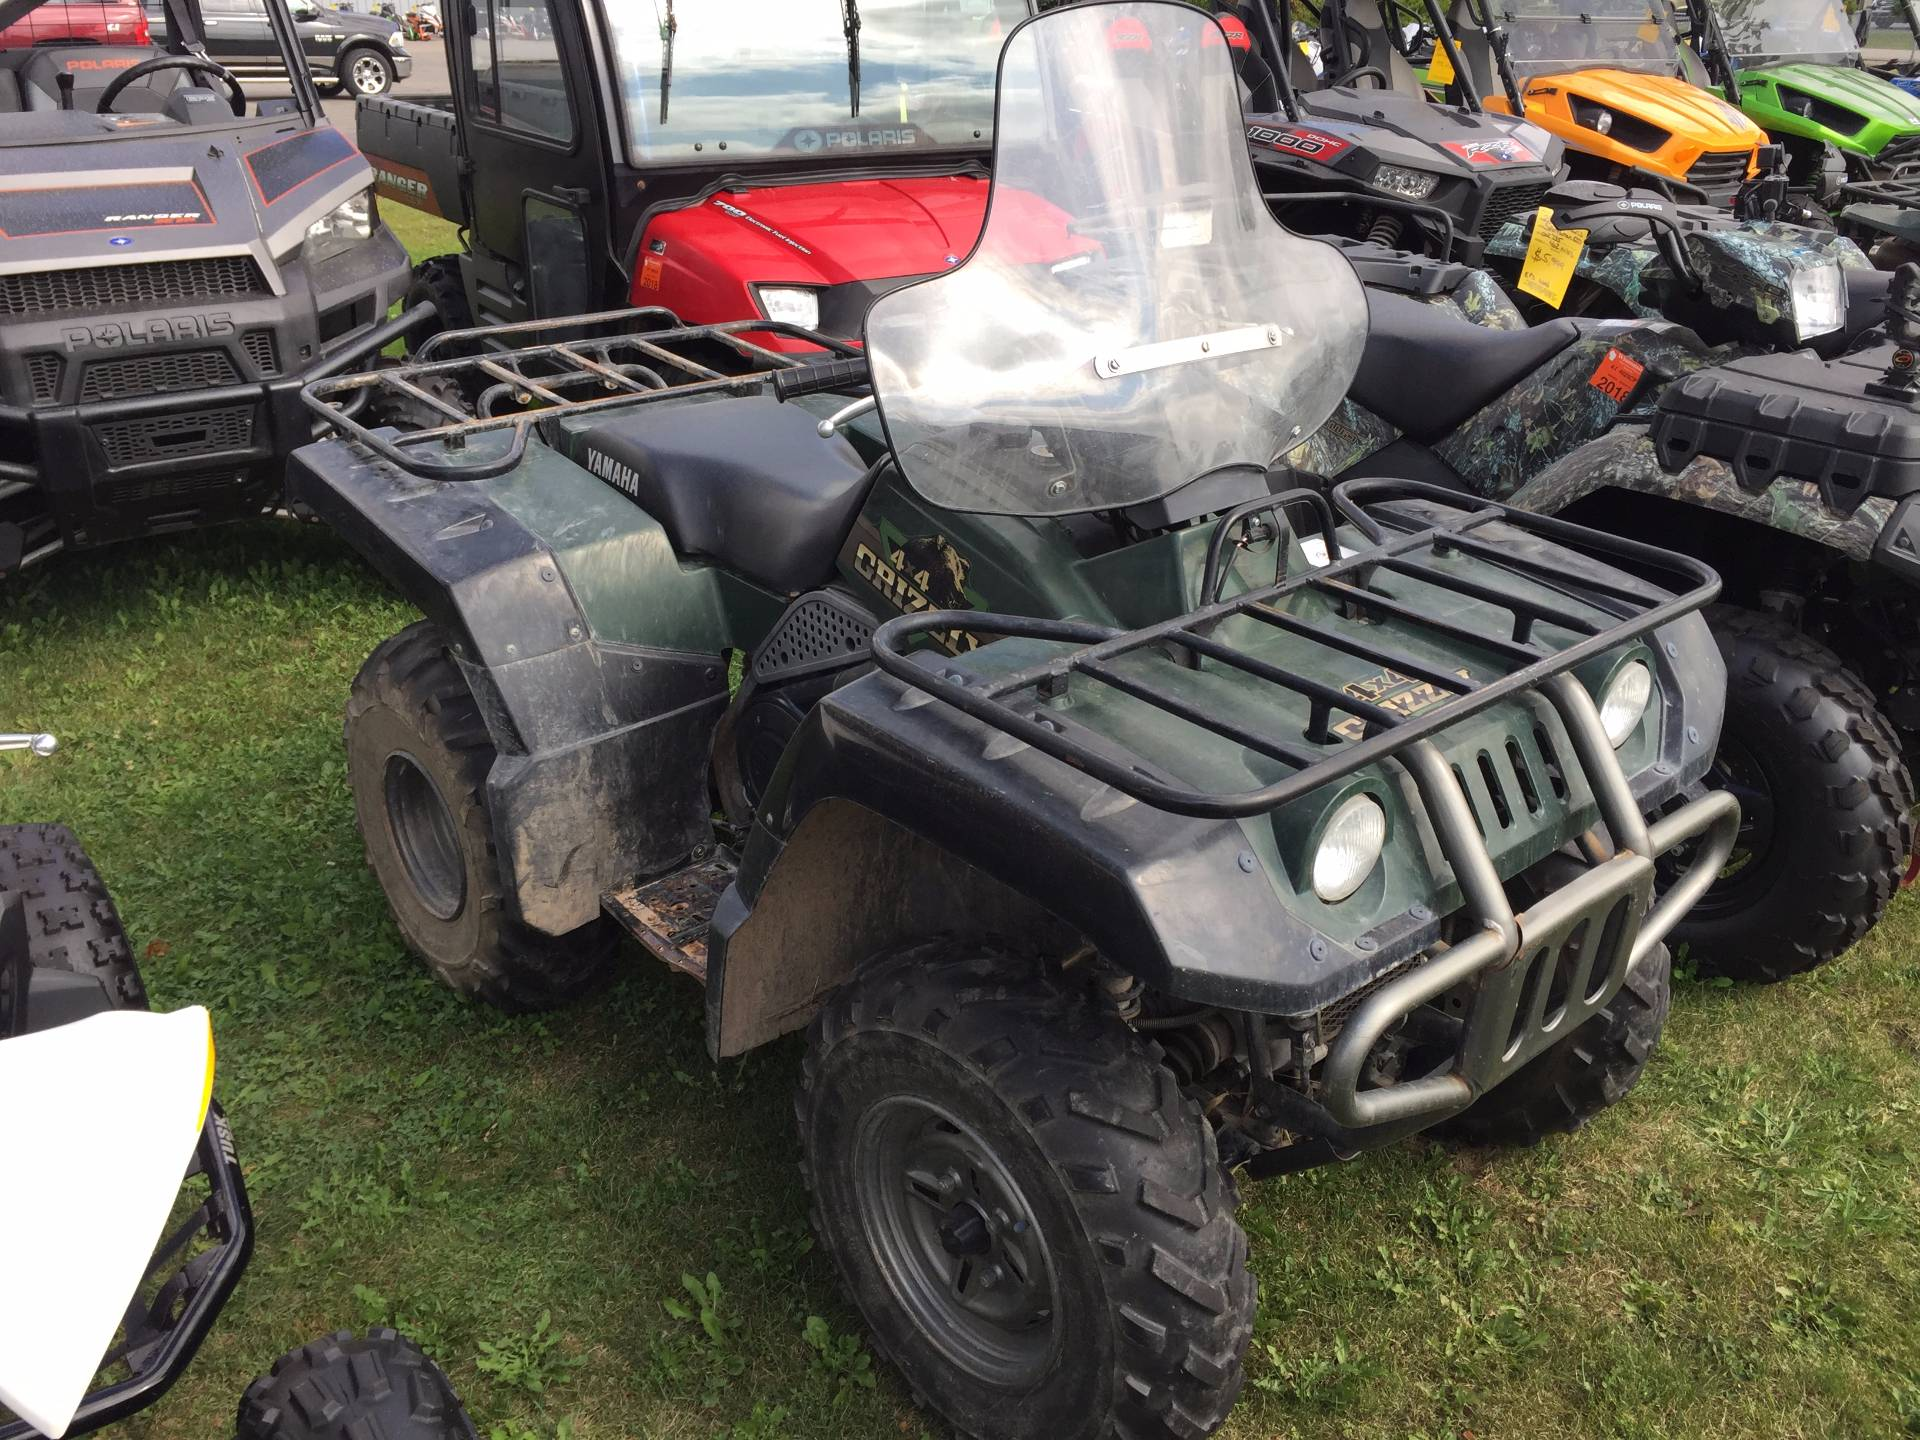 1998 yamaha grizzly 600 4x4 for sale kaukauna wi 72161 for Yamaha grizzly 600